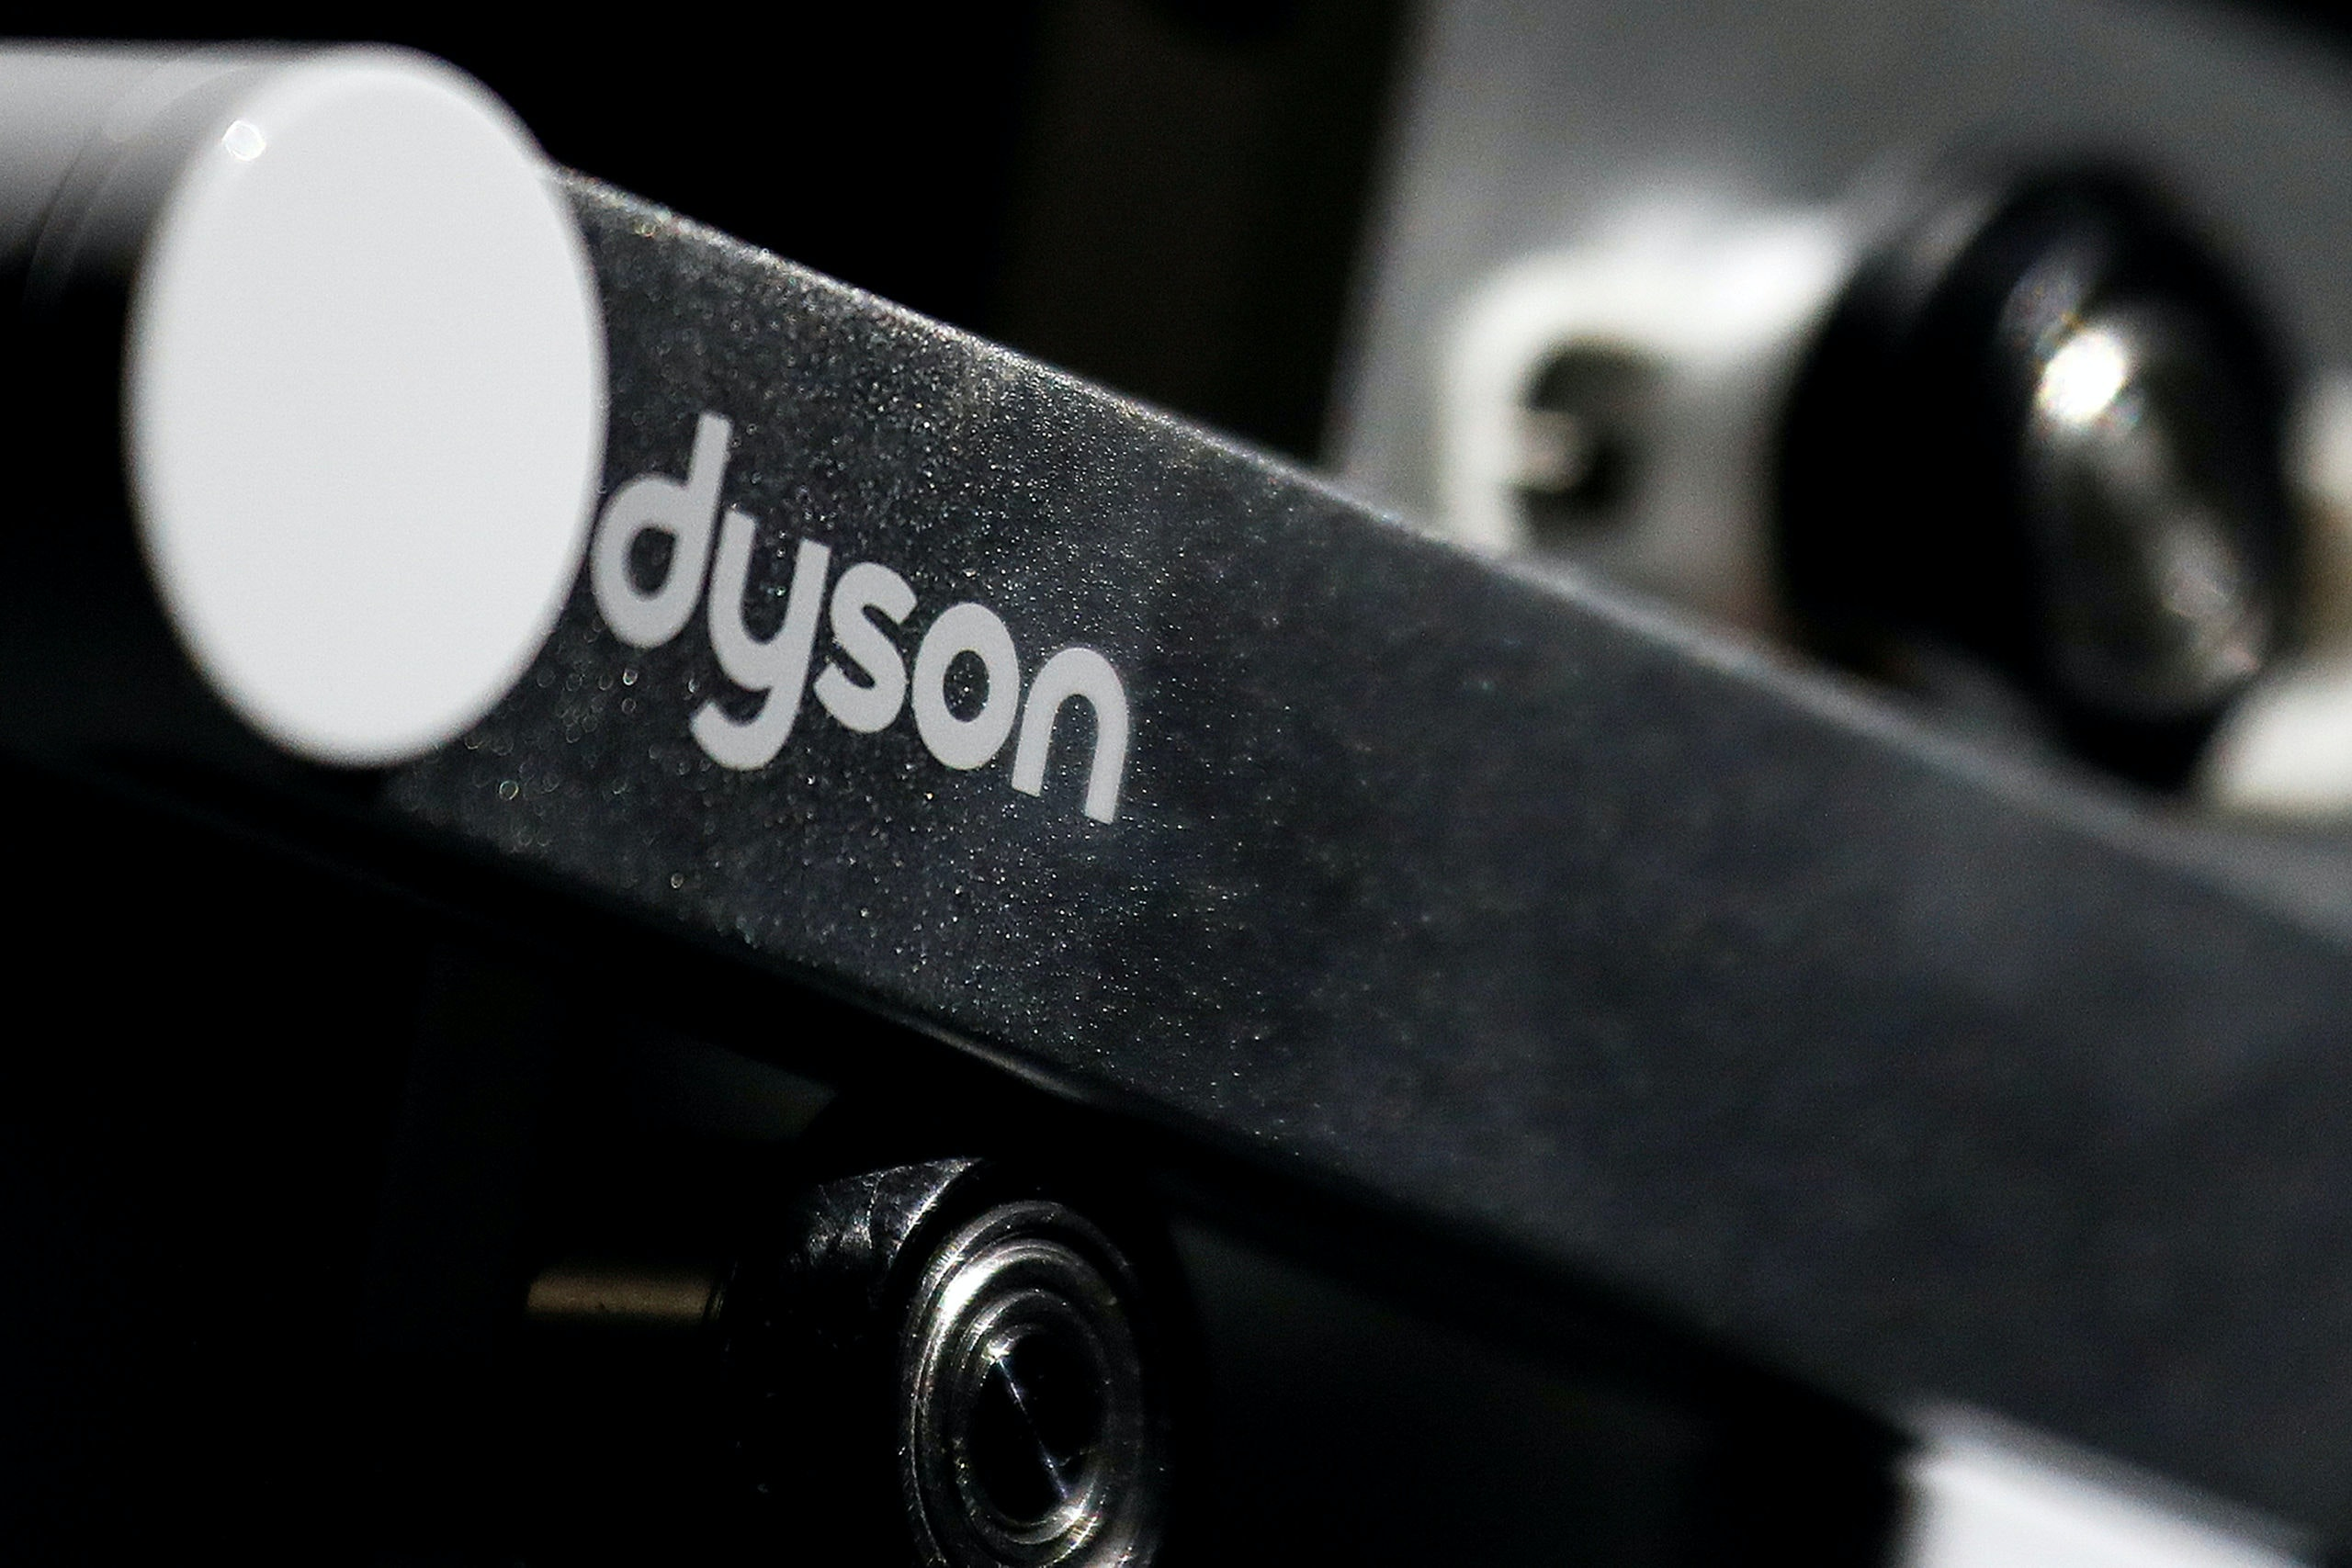 FILE PHOTO: A Dyson logo is seen on one of company's products presented during an event in Beijing, China September 12, 2018. REUTERS/Damir Sagolj/File Photo